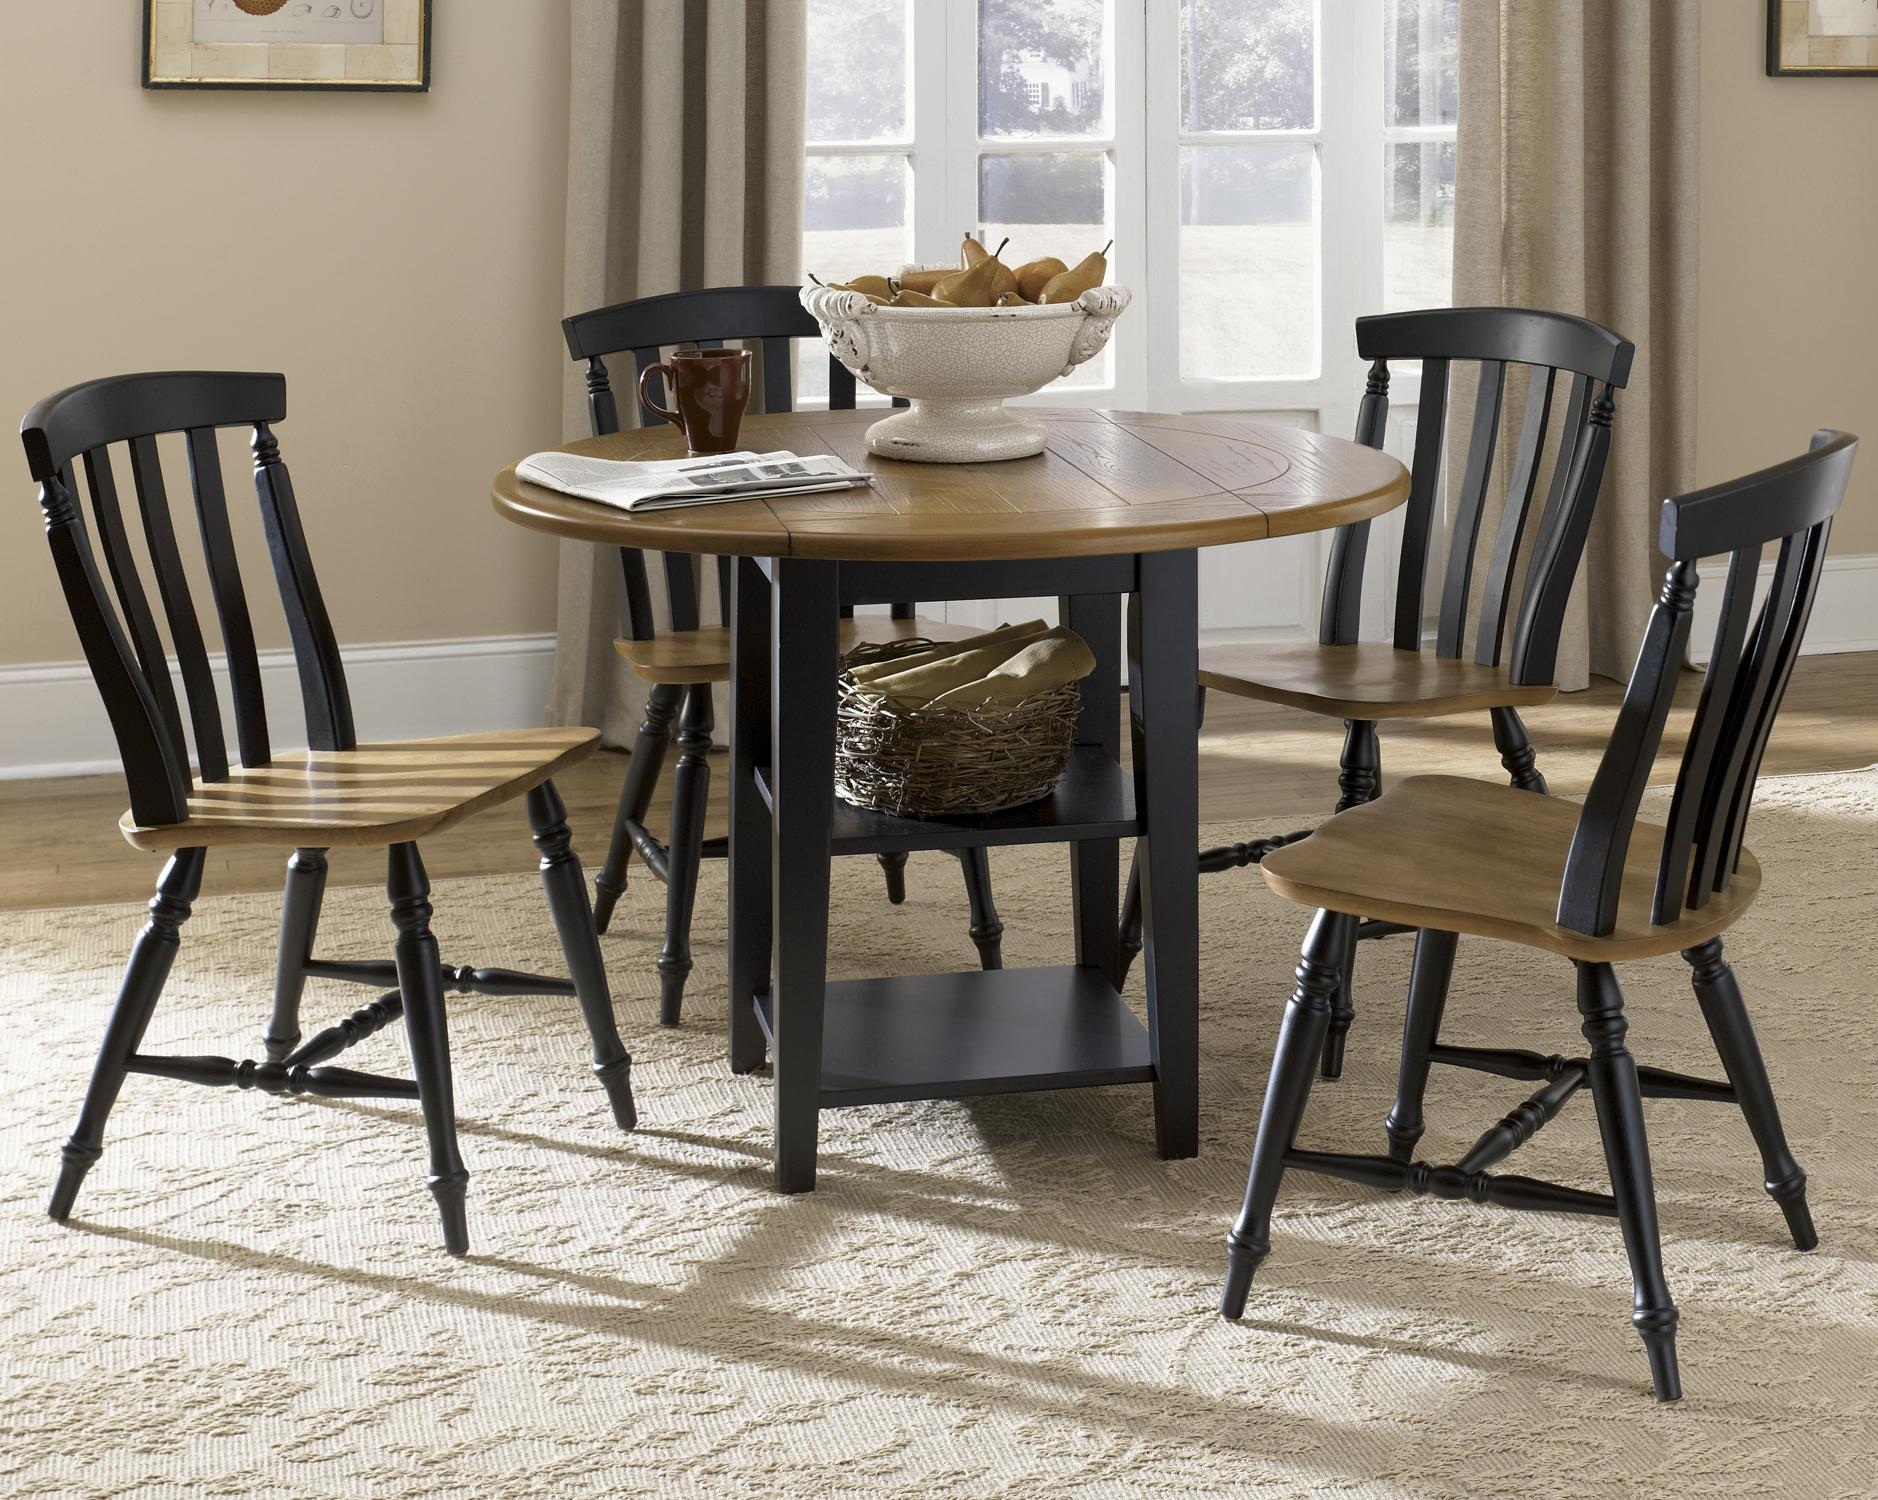 Five Piece Drop Leaf Table and Slat Back Chairs Set & Five Piece Drop Leaf Table and Slat Back Chairs Set by Liberty ...